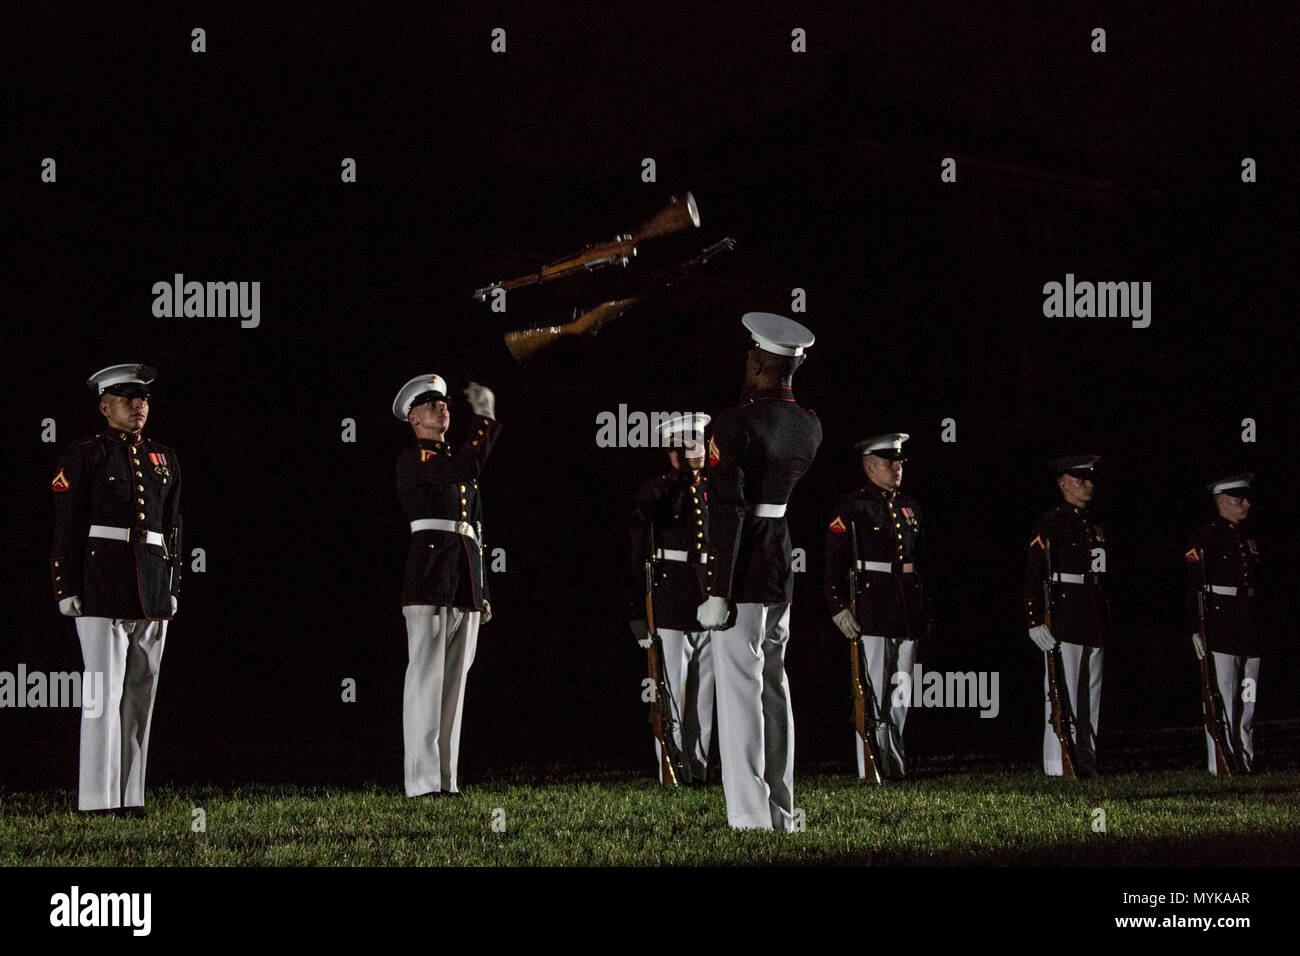 The U.S. Marine Corps Silent Drill Platoon performs during an evening parade at Marine Barracks Washington, Washington, D.C., May 05, 2017. Evening parades are held as a means of honoring senior officials, distinguished citizens and supporters of the Marine Corps. Stock Photo